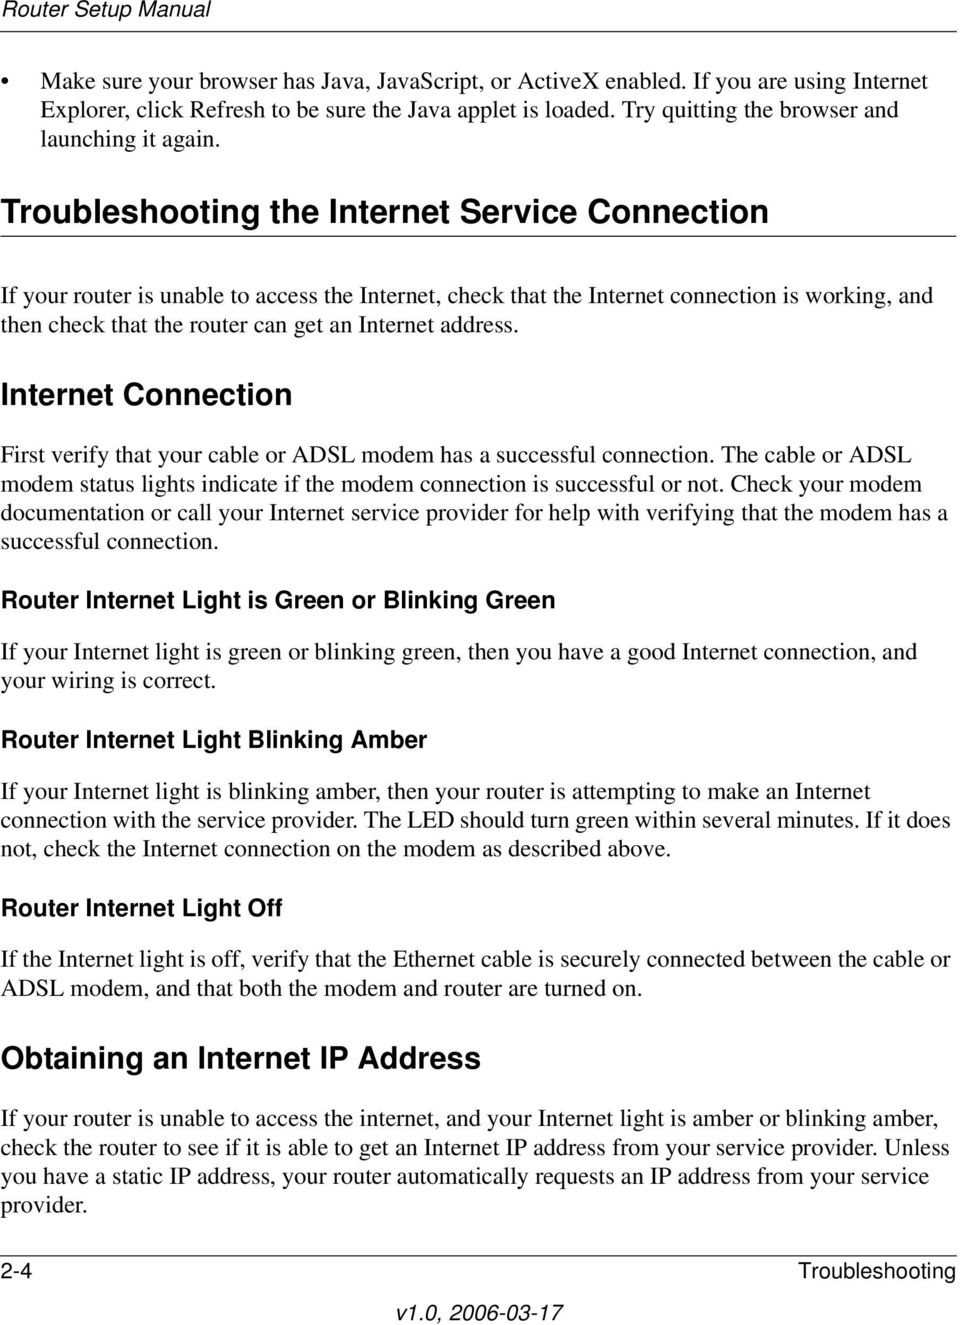 Troubleshooting the Internet Service Connection If your router is unable to access the Internet, check that the Internet connection is working, and then check that the router can get an Internet